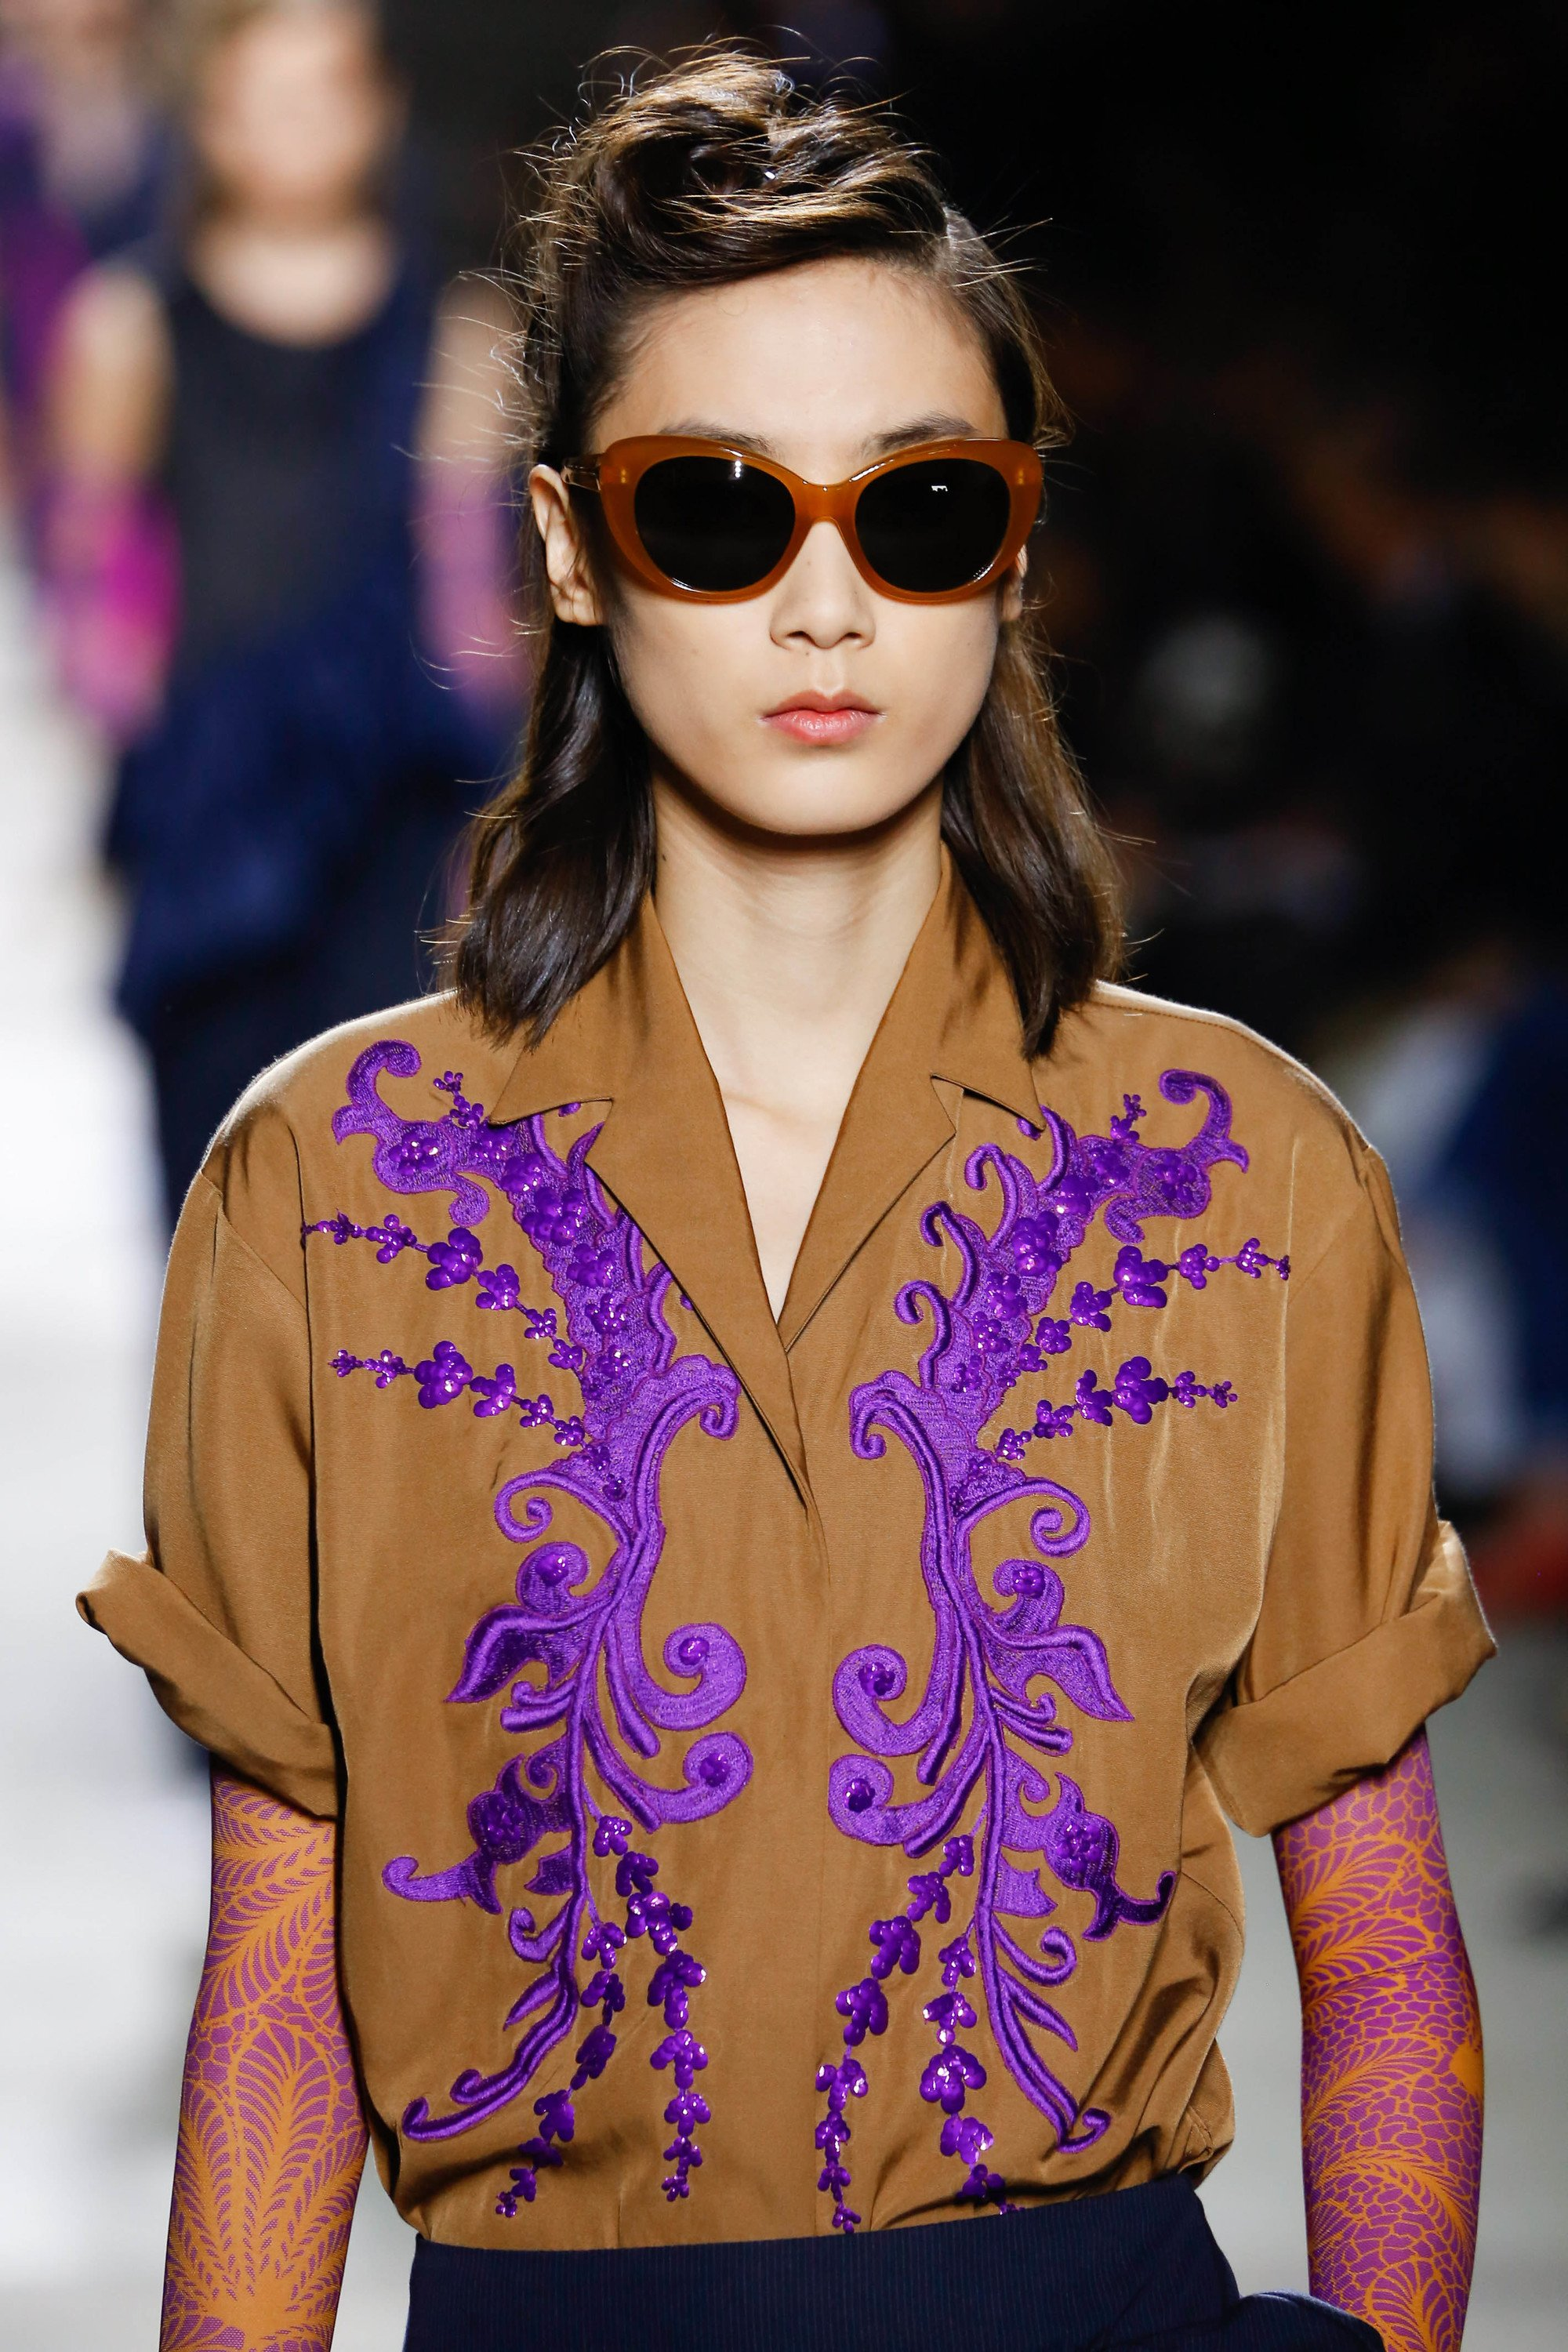 Dries Van Noten SS 2016 retro hairstyles